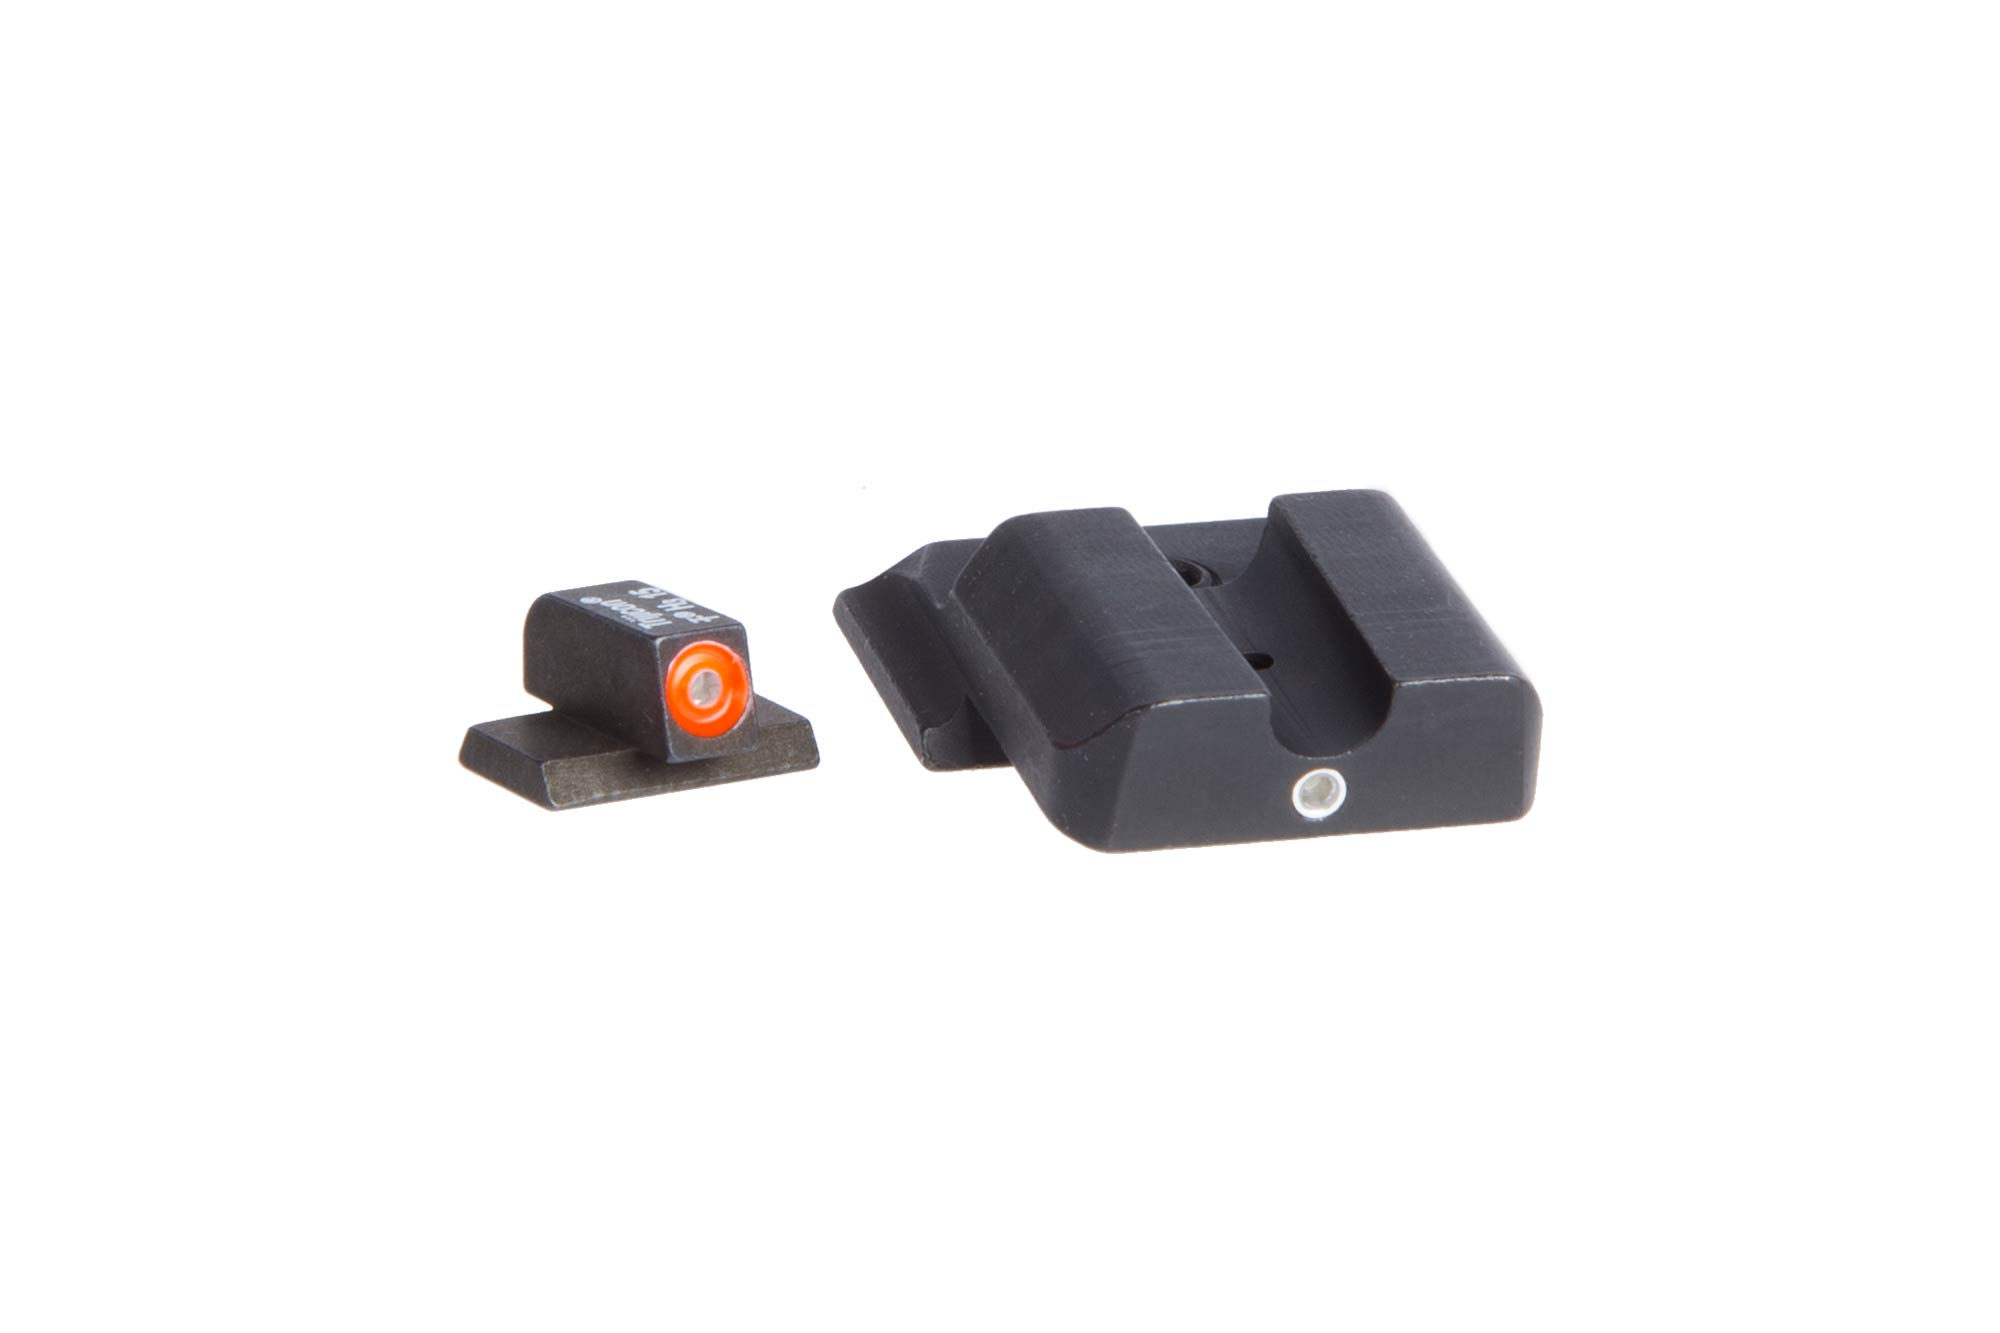 The Ameriglo PRO I-DOT Smith and Wesson Shield night sights set feature green Tritium inserts for low light visibility